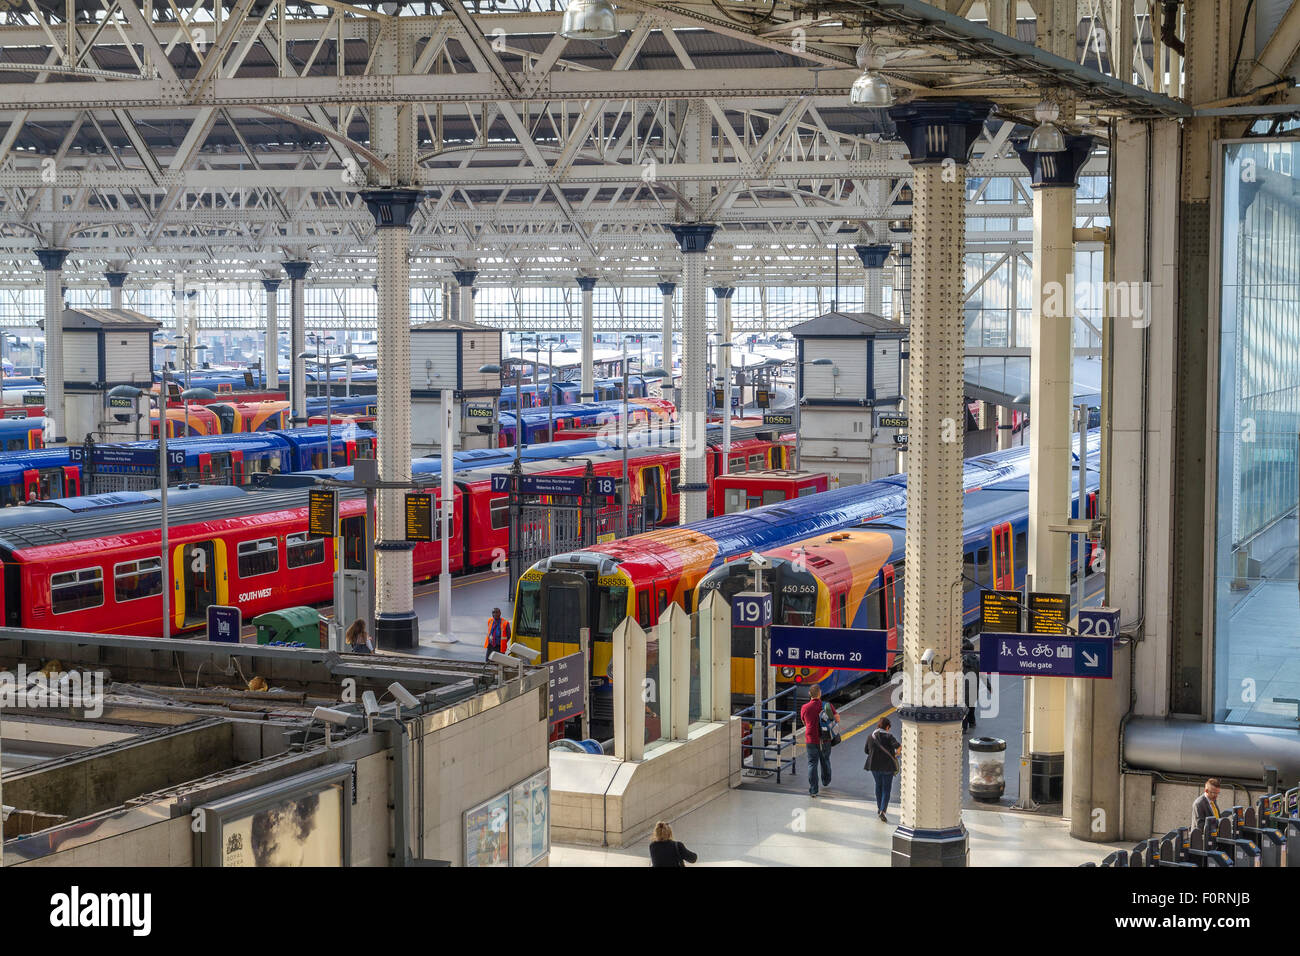 Trains waiting At Platforms at Waterloo station ,London's Busiest station - Stock Image